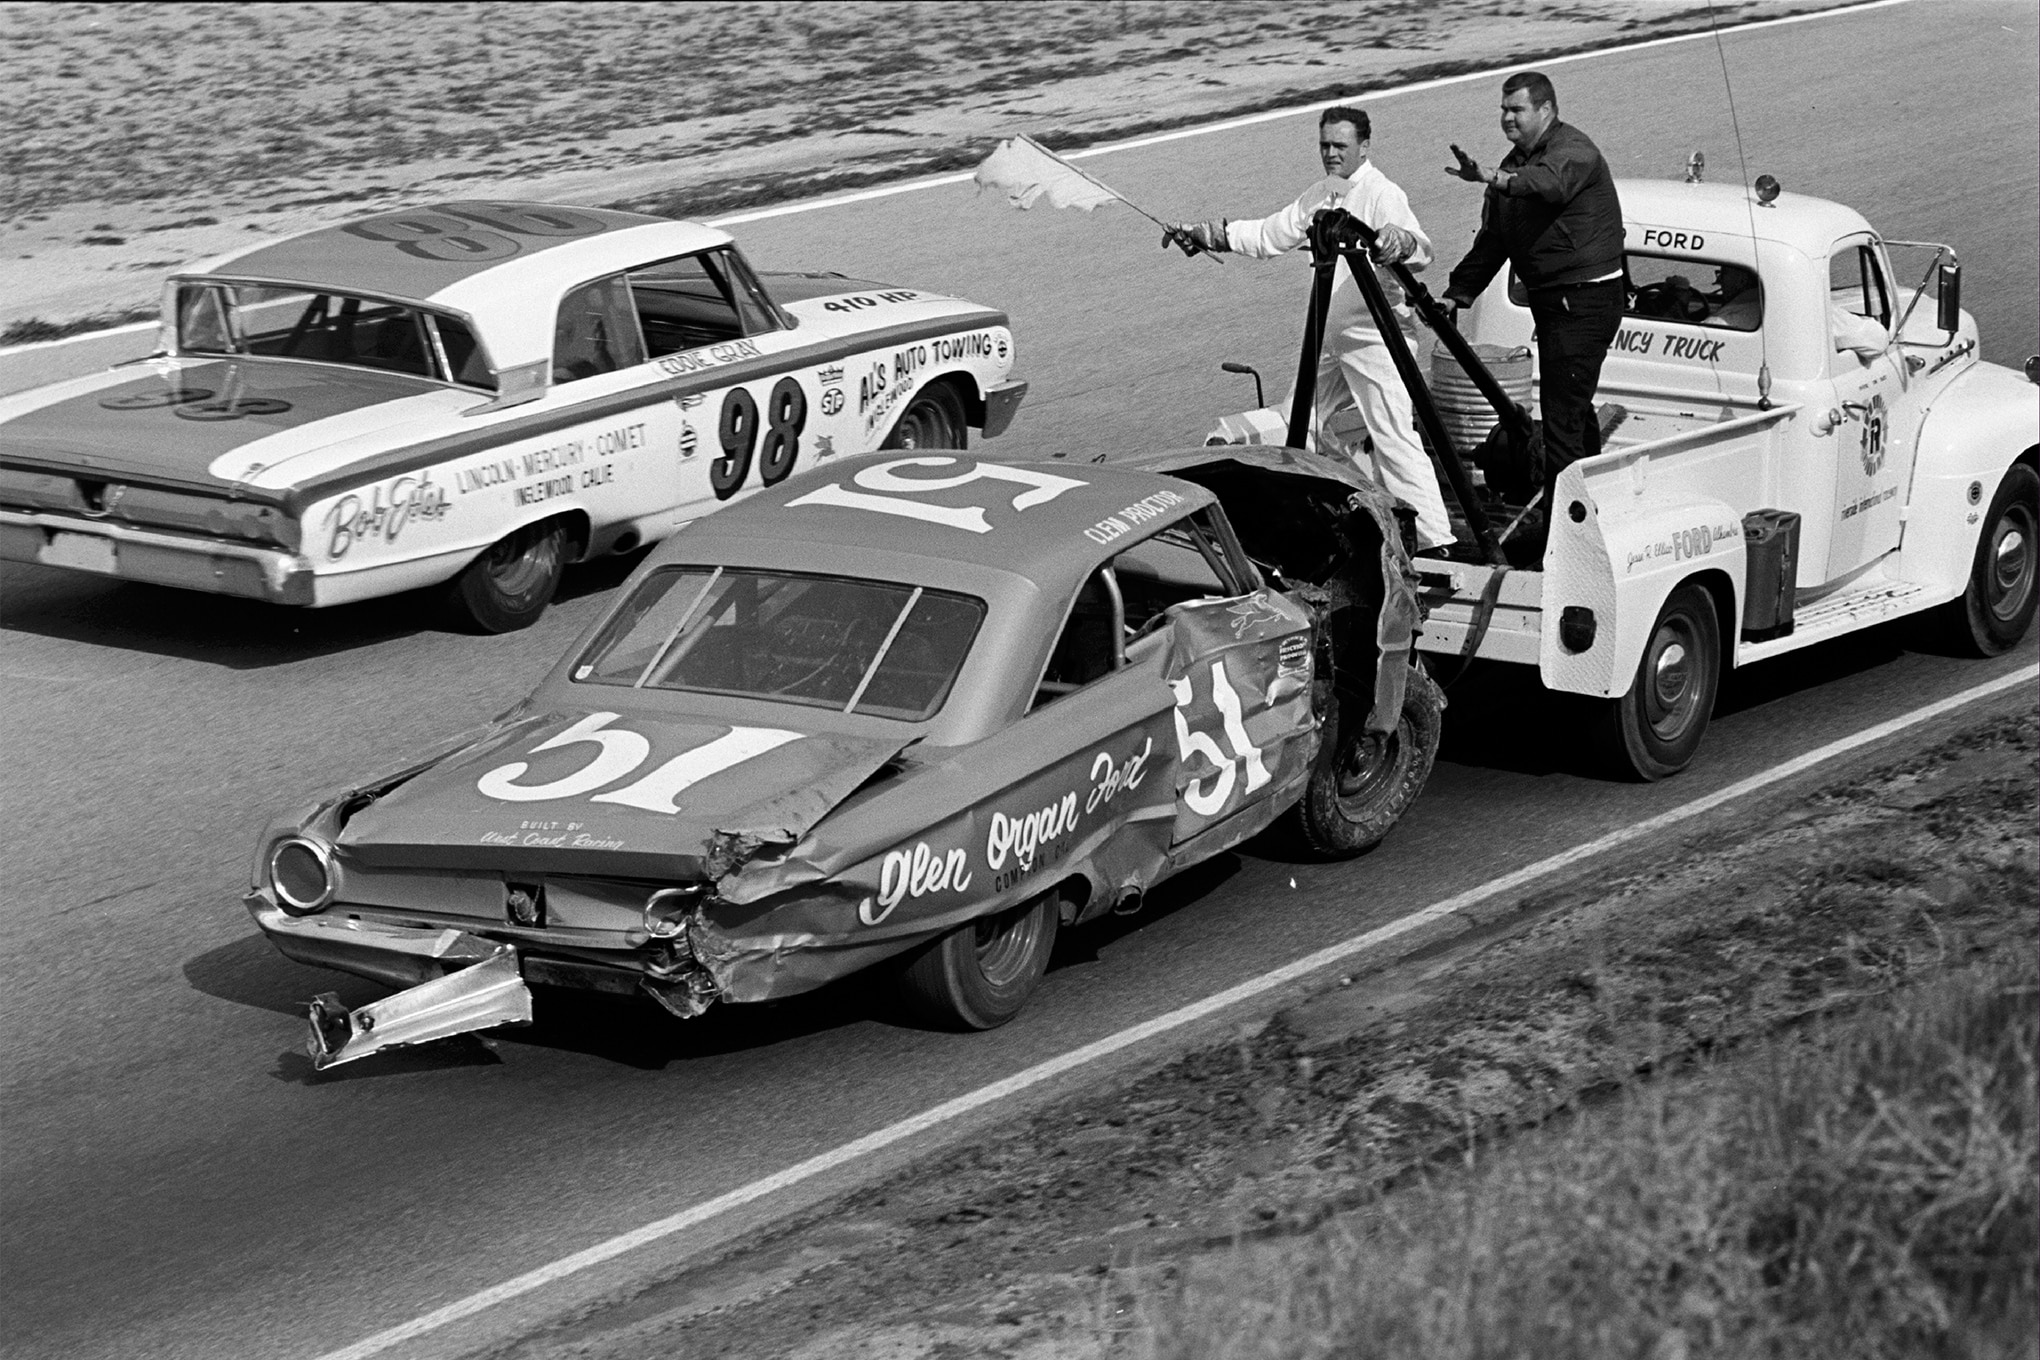 Riverside's road course was particularly tricky and treacherous for heavy stock cars. Clem Proctor's 427ci Galaxie was an early casualty of the Motor Trend 500, crashing on the 15th of 185 laps. Eddie Gray (98) ultimately advanced from 39th (of 44) qualifying position to finish 12th in Ralph Shelton's year-old Mercury.